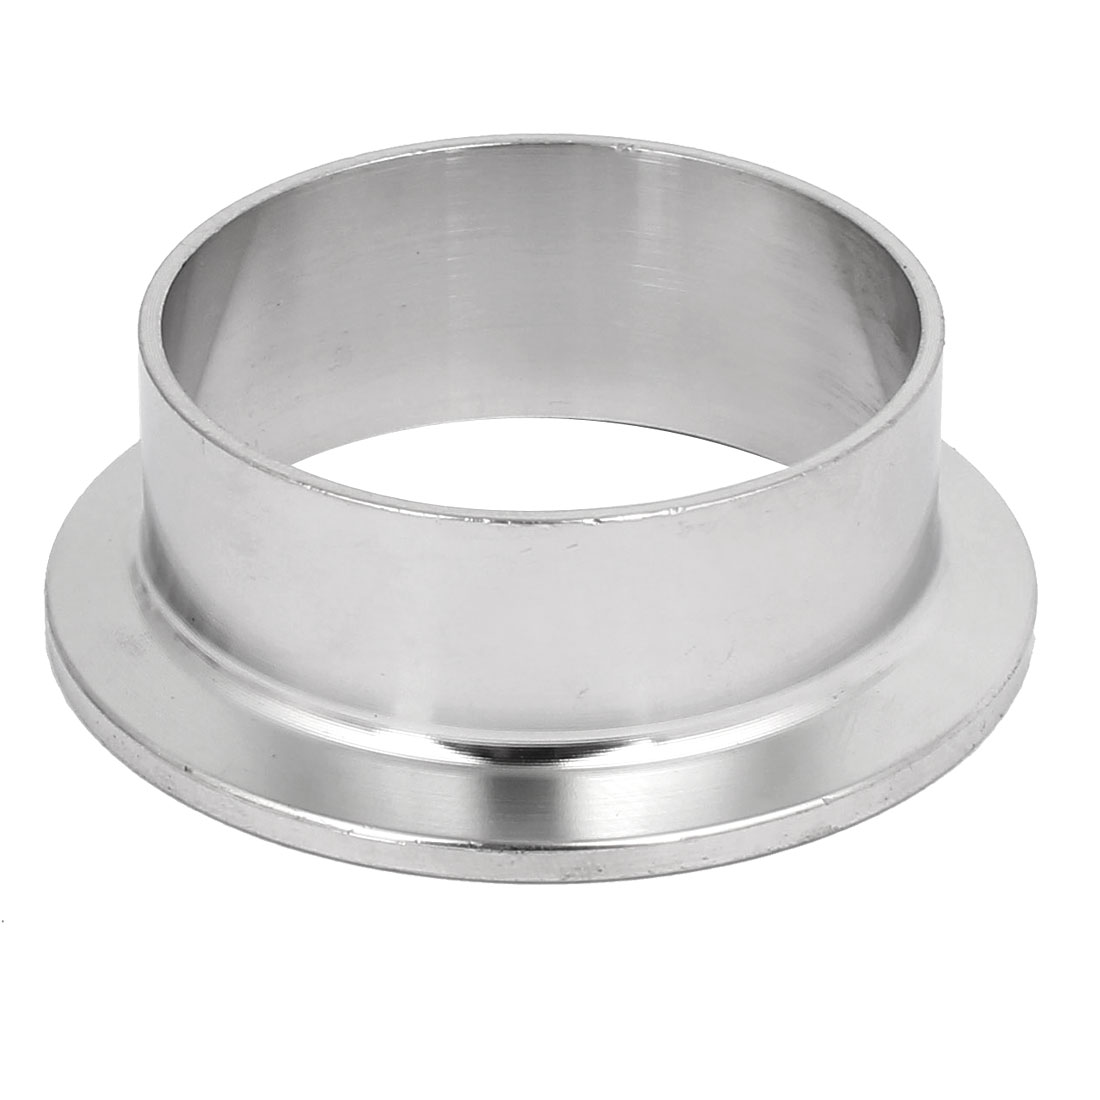 304 Stainless Steel 51mm OD Sanitary Pipe Weld on Ferrule Fits 2 Tri Clamp 273mm od sanitary weld on 286mm ferrule tri clamp stainless steel welding pipe fitting ss304 sw 273 page 2